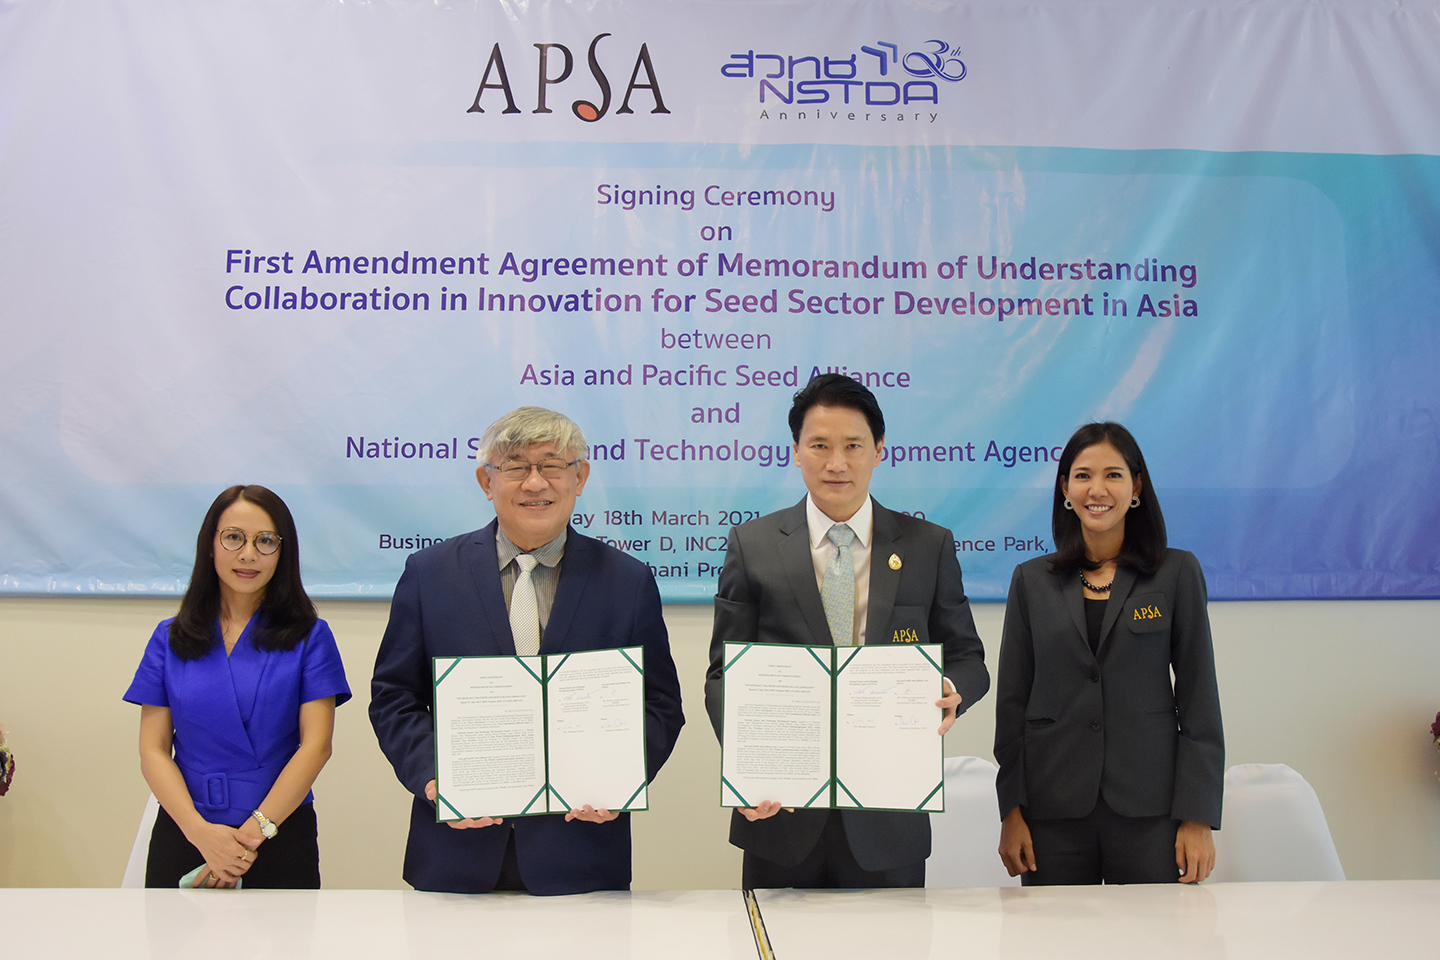 NSTDA and APSA extend MoU to strengthen Asia-Pacific seed sector R&D through 2027